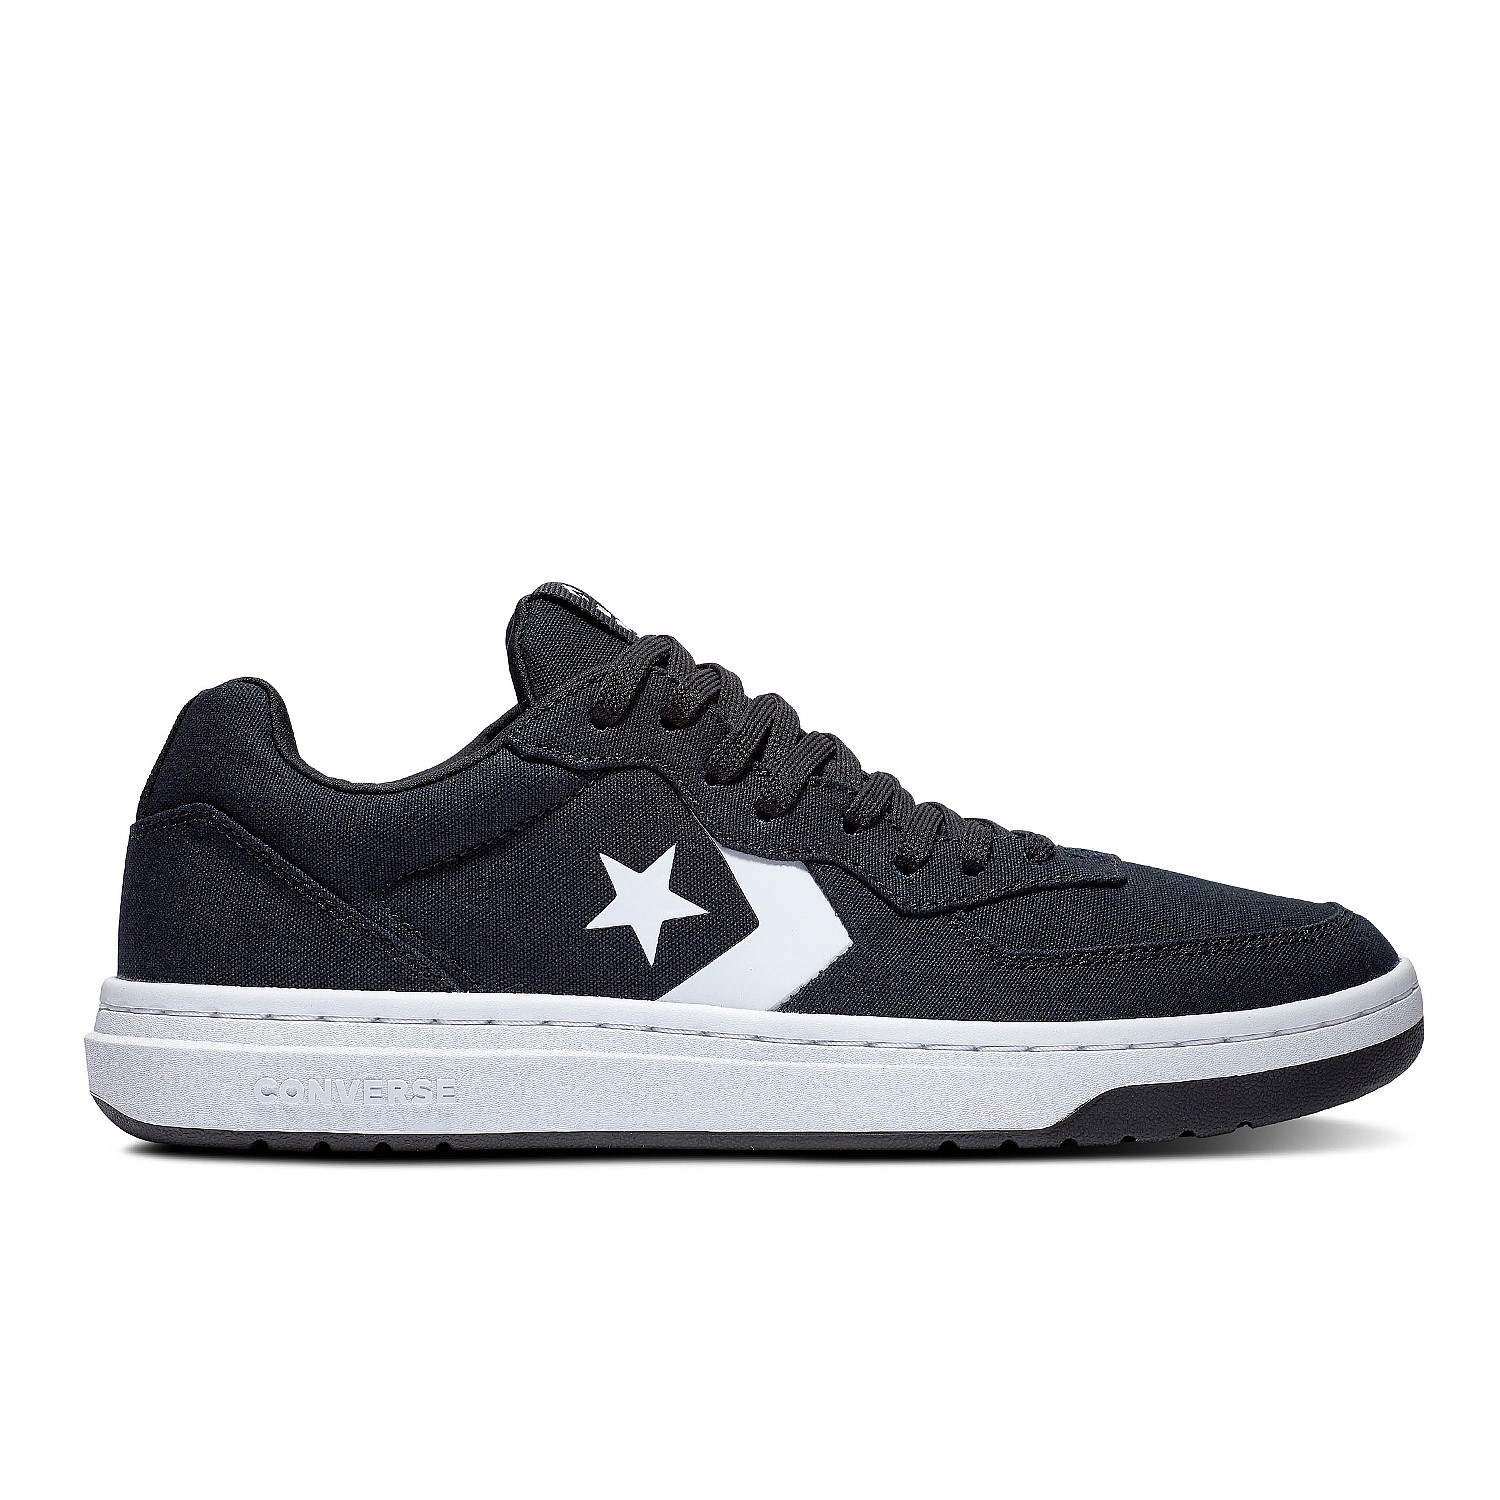 5601ffc0916e Converse | Shop Converse Lifestyle Footwear Online | Stirling Sports -  Rival Low Mens